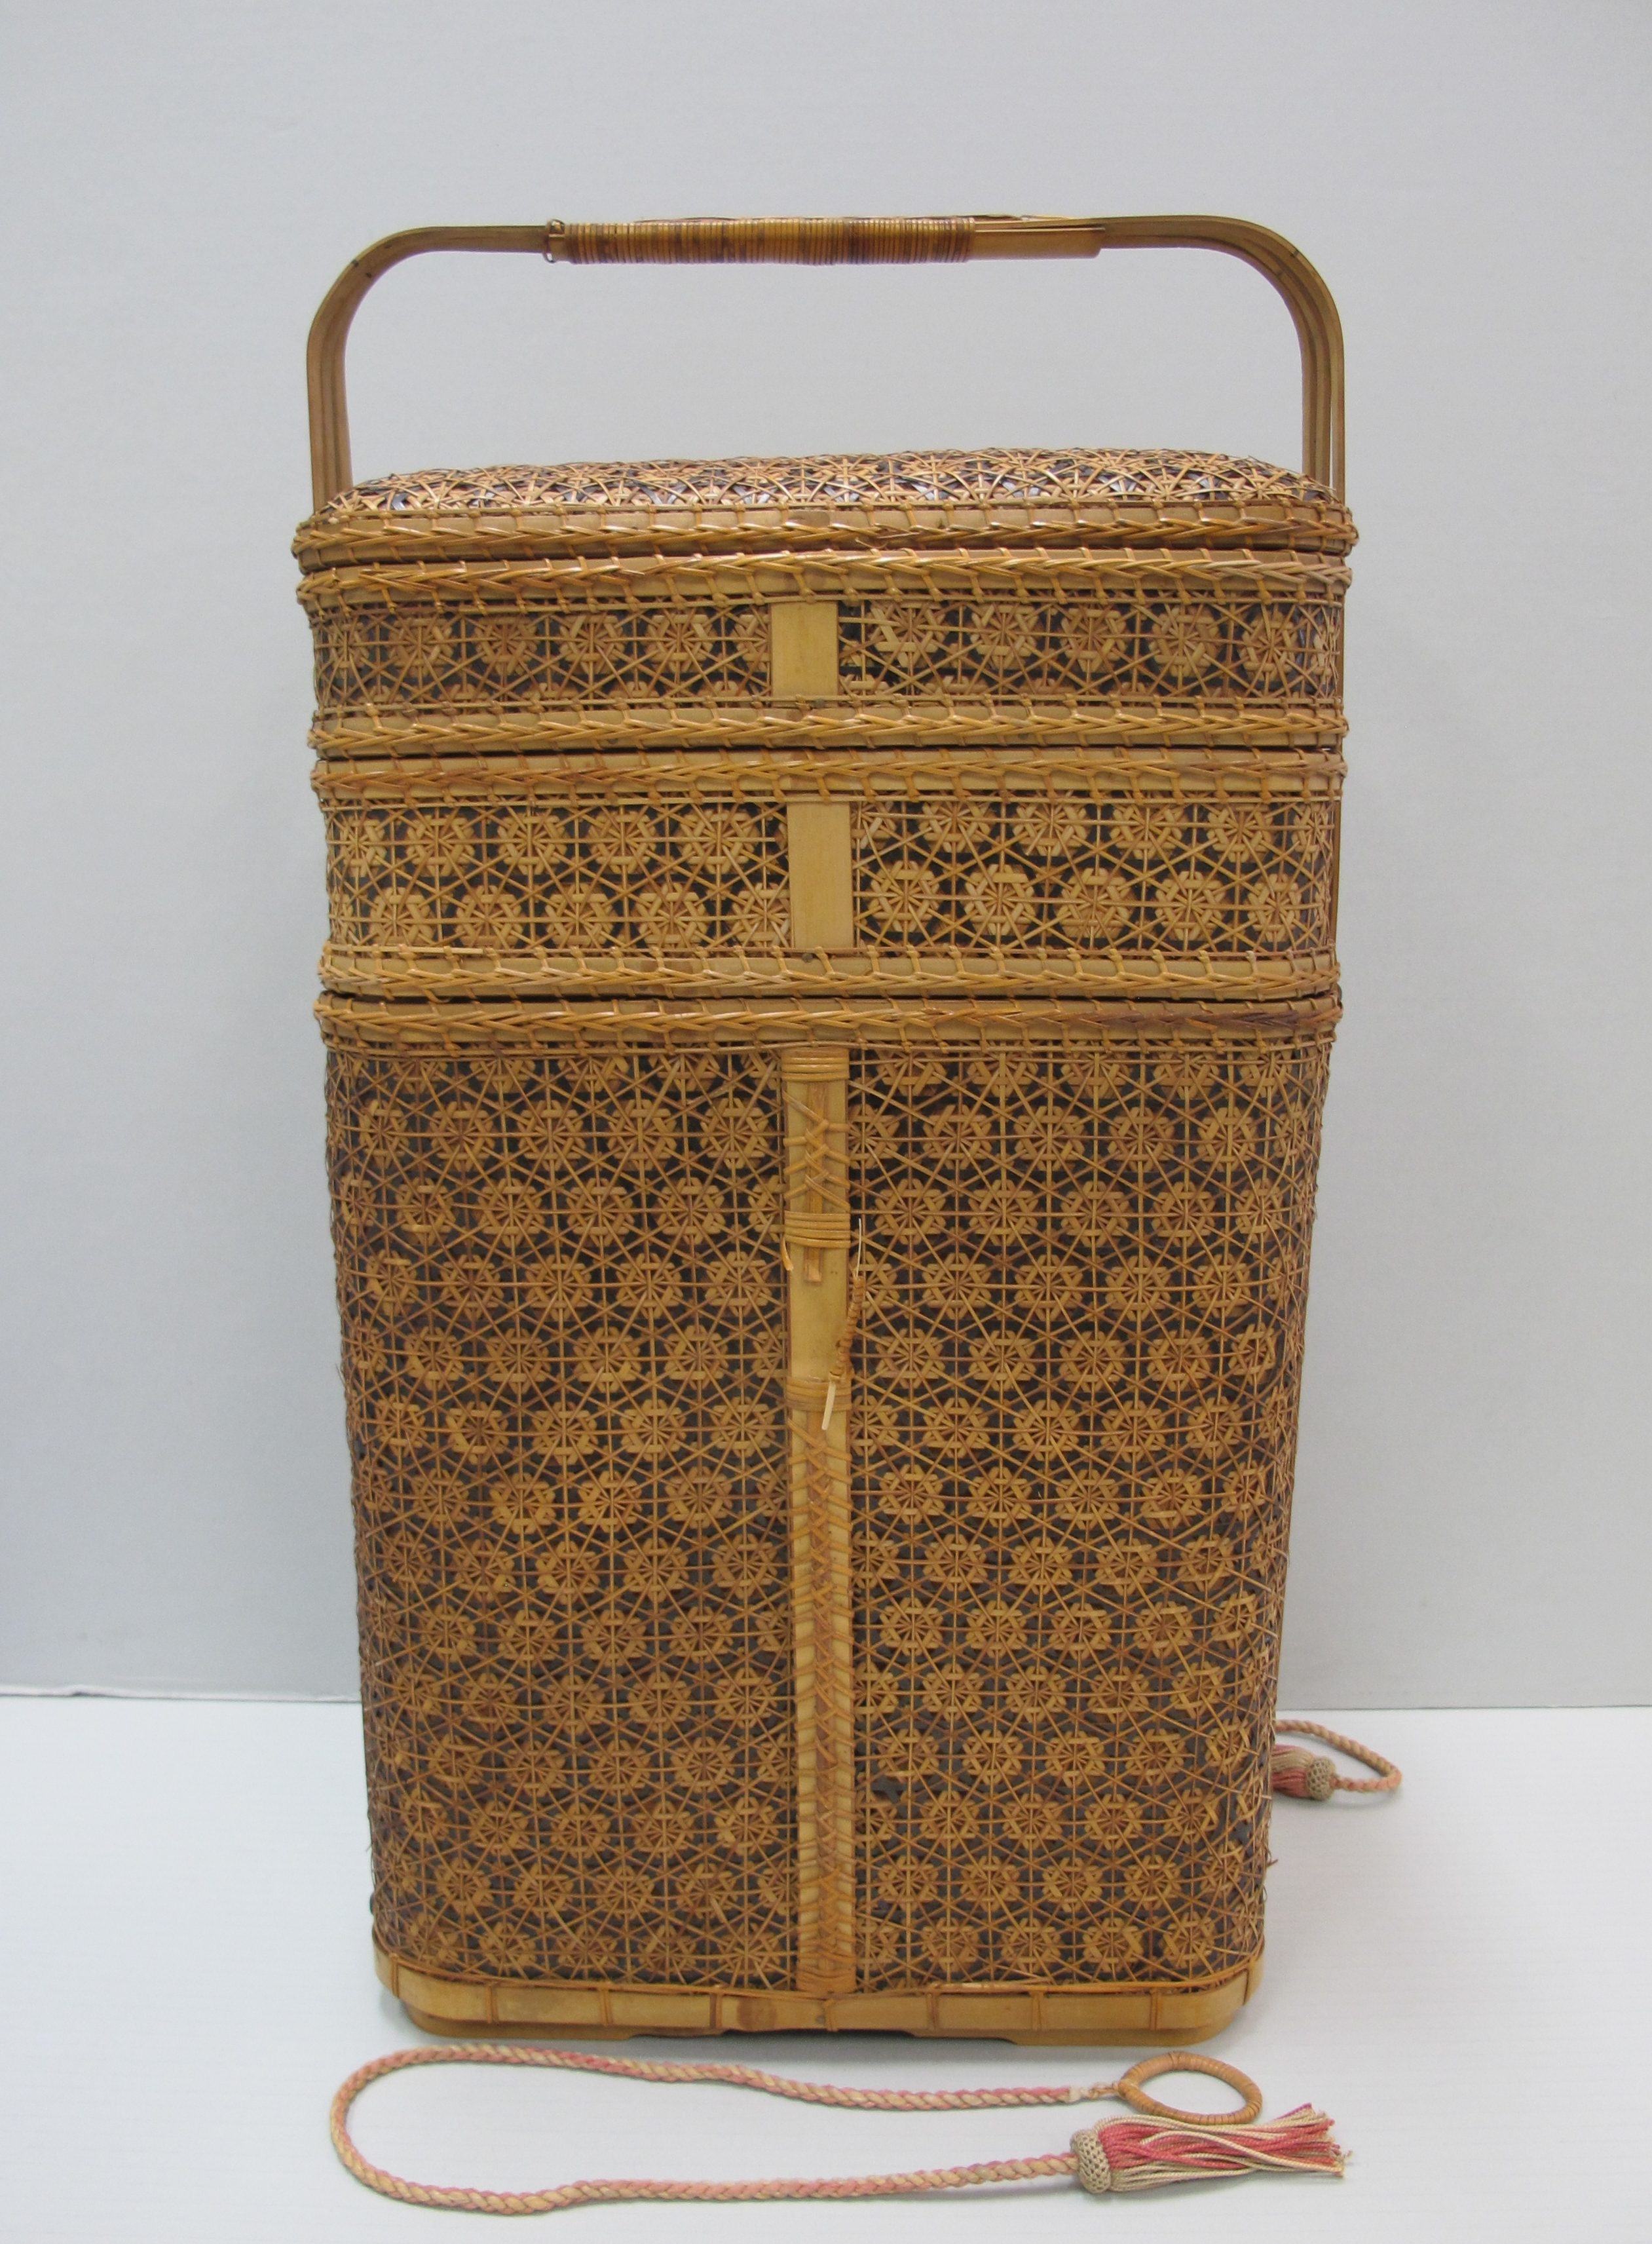 Intricately woven bamboo basket with three tiered compartments, a lid, handle and two silk ties with tasseled ends.